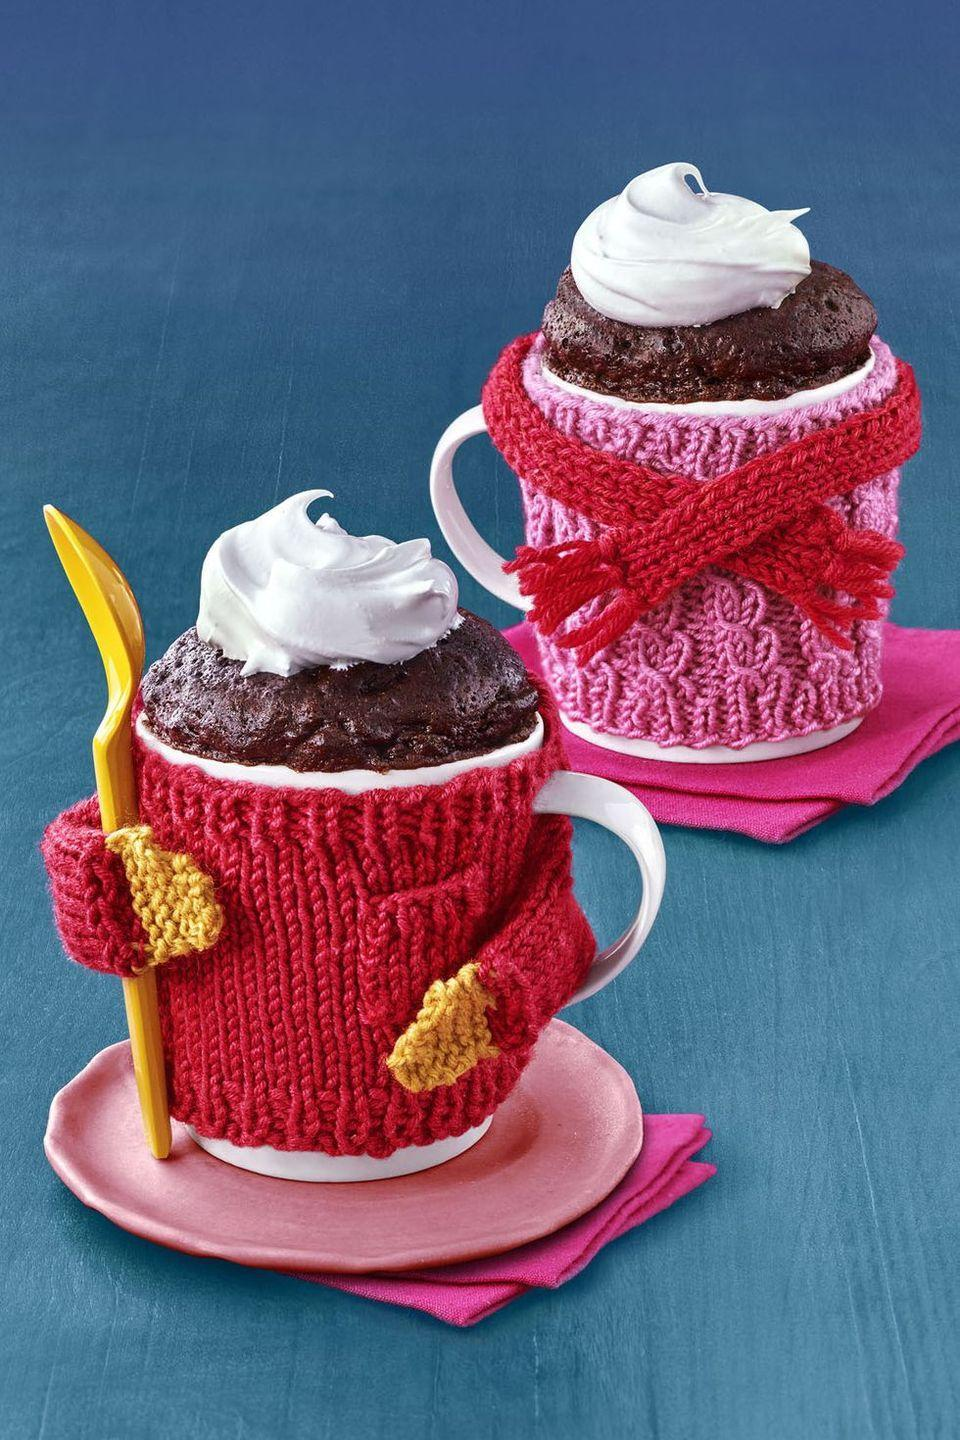 """<p>Only the nicest things come in our favorite coffee mugs, and this soul-warming chocolate cake is no exception! You'll use cocoa powder to create the base of this rich cake that's finished with a dollop of sweet cream. This ultra-satisfying dessert is ready in 8 minutes flat. </p><p><a href=""""https://www.womansday.com/food-recipes/food-drinks/recipes/a57924/microwave-mug-cake-recipe/"""" rel=""""nofollow noopener"""" target=""""_blank"""" data-ylk=""""slk:Get the recipe from Woman's Day »"""" class=""""link rapid-noclick-resp""""><em>Get the recipe from Woman's Day »</em></a></p>"""